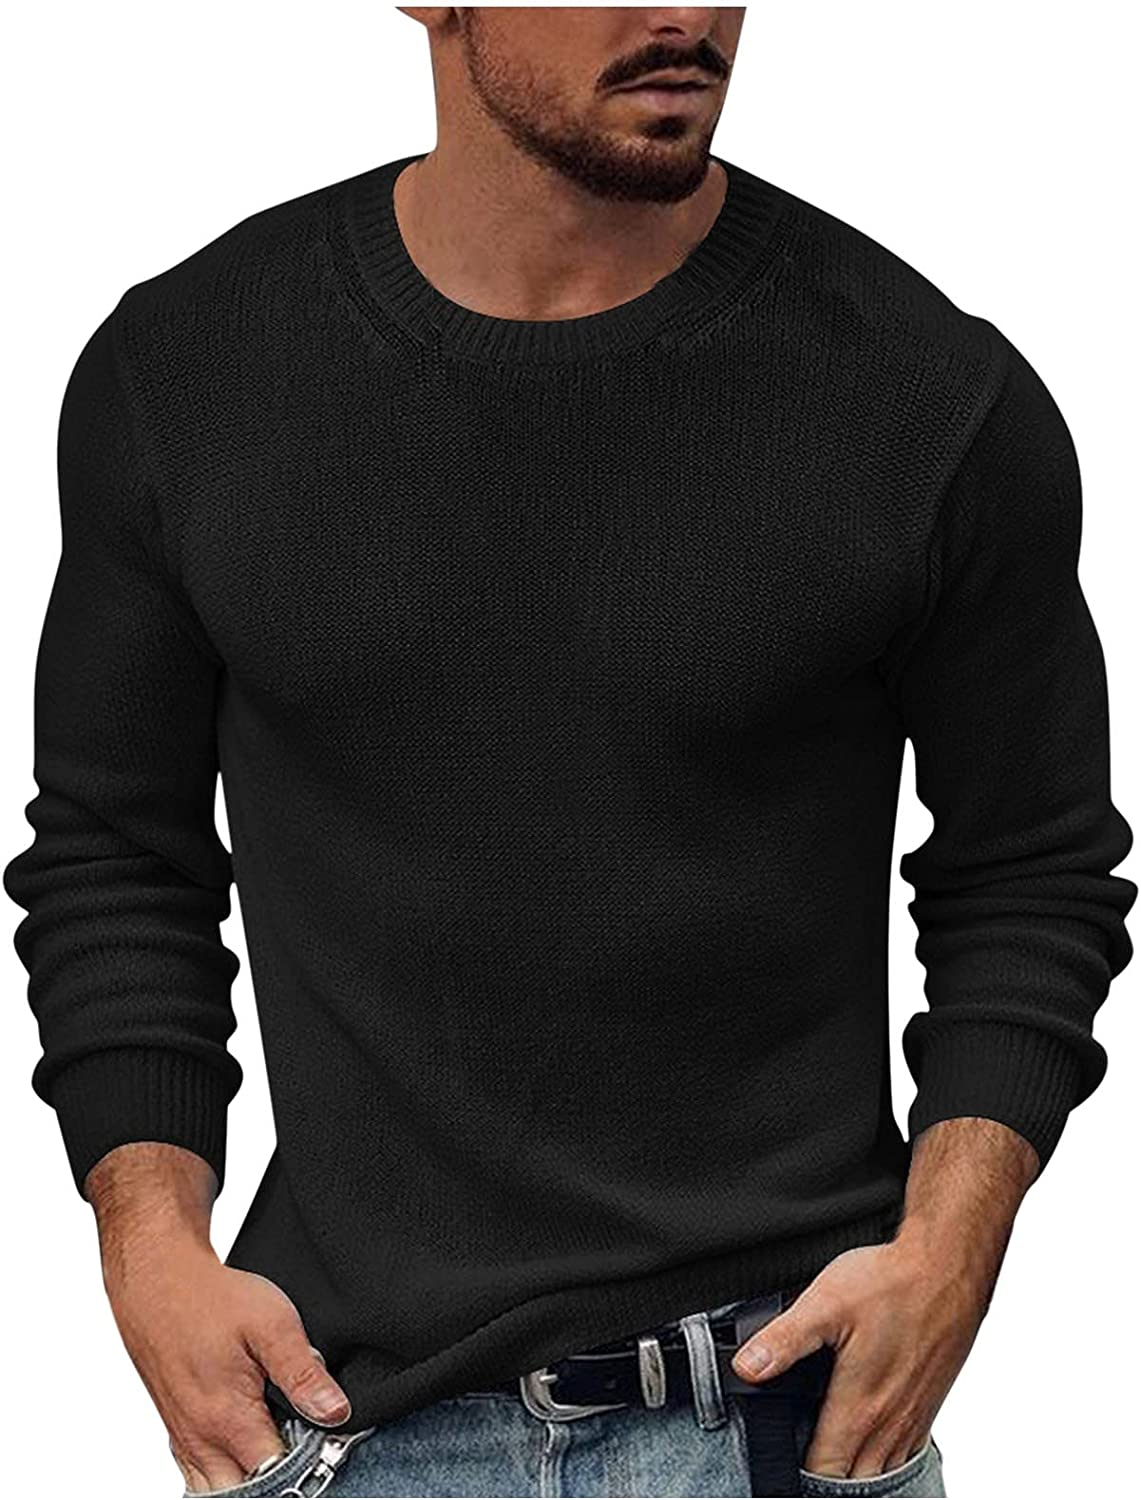 Blouse for Men,Men's Solid Casual Slim Knit Round Neck Long Sleeve Pullover Sweater Tops